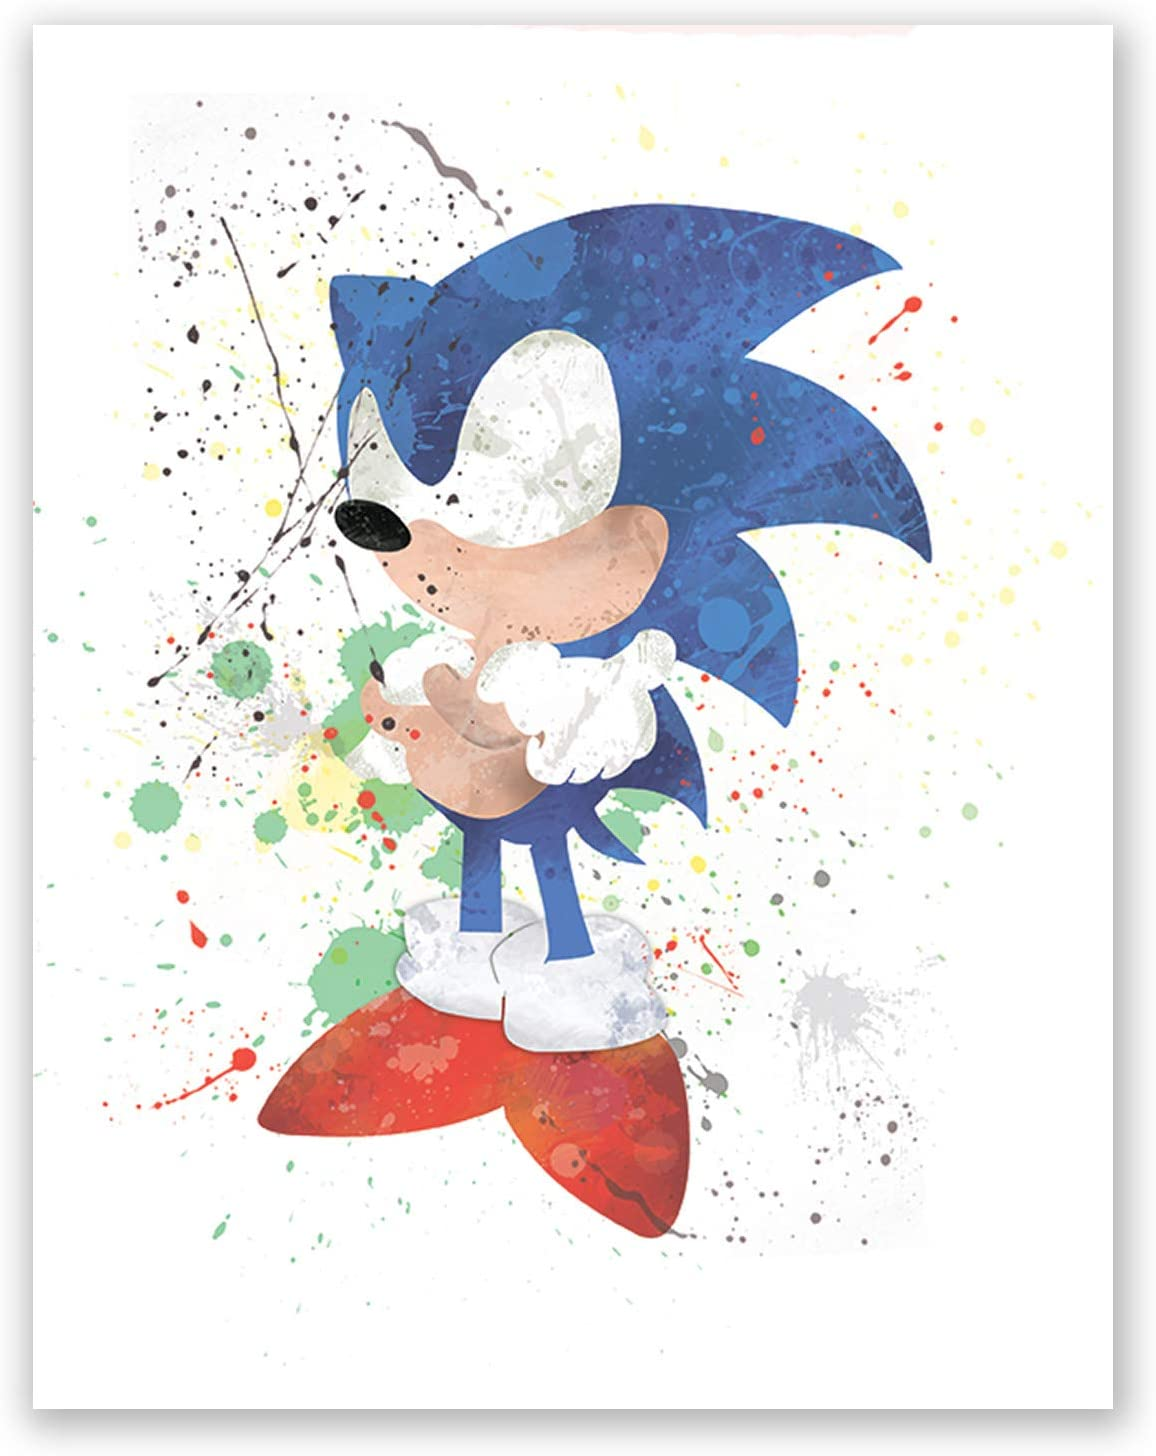 Super Sonic Adventure Hedgehog Poster - Decor Painting Paper for Boys – Classic Game Print - Nursery Art –- Wall Party Print (11x14)